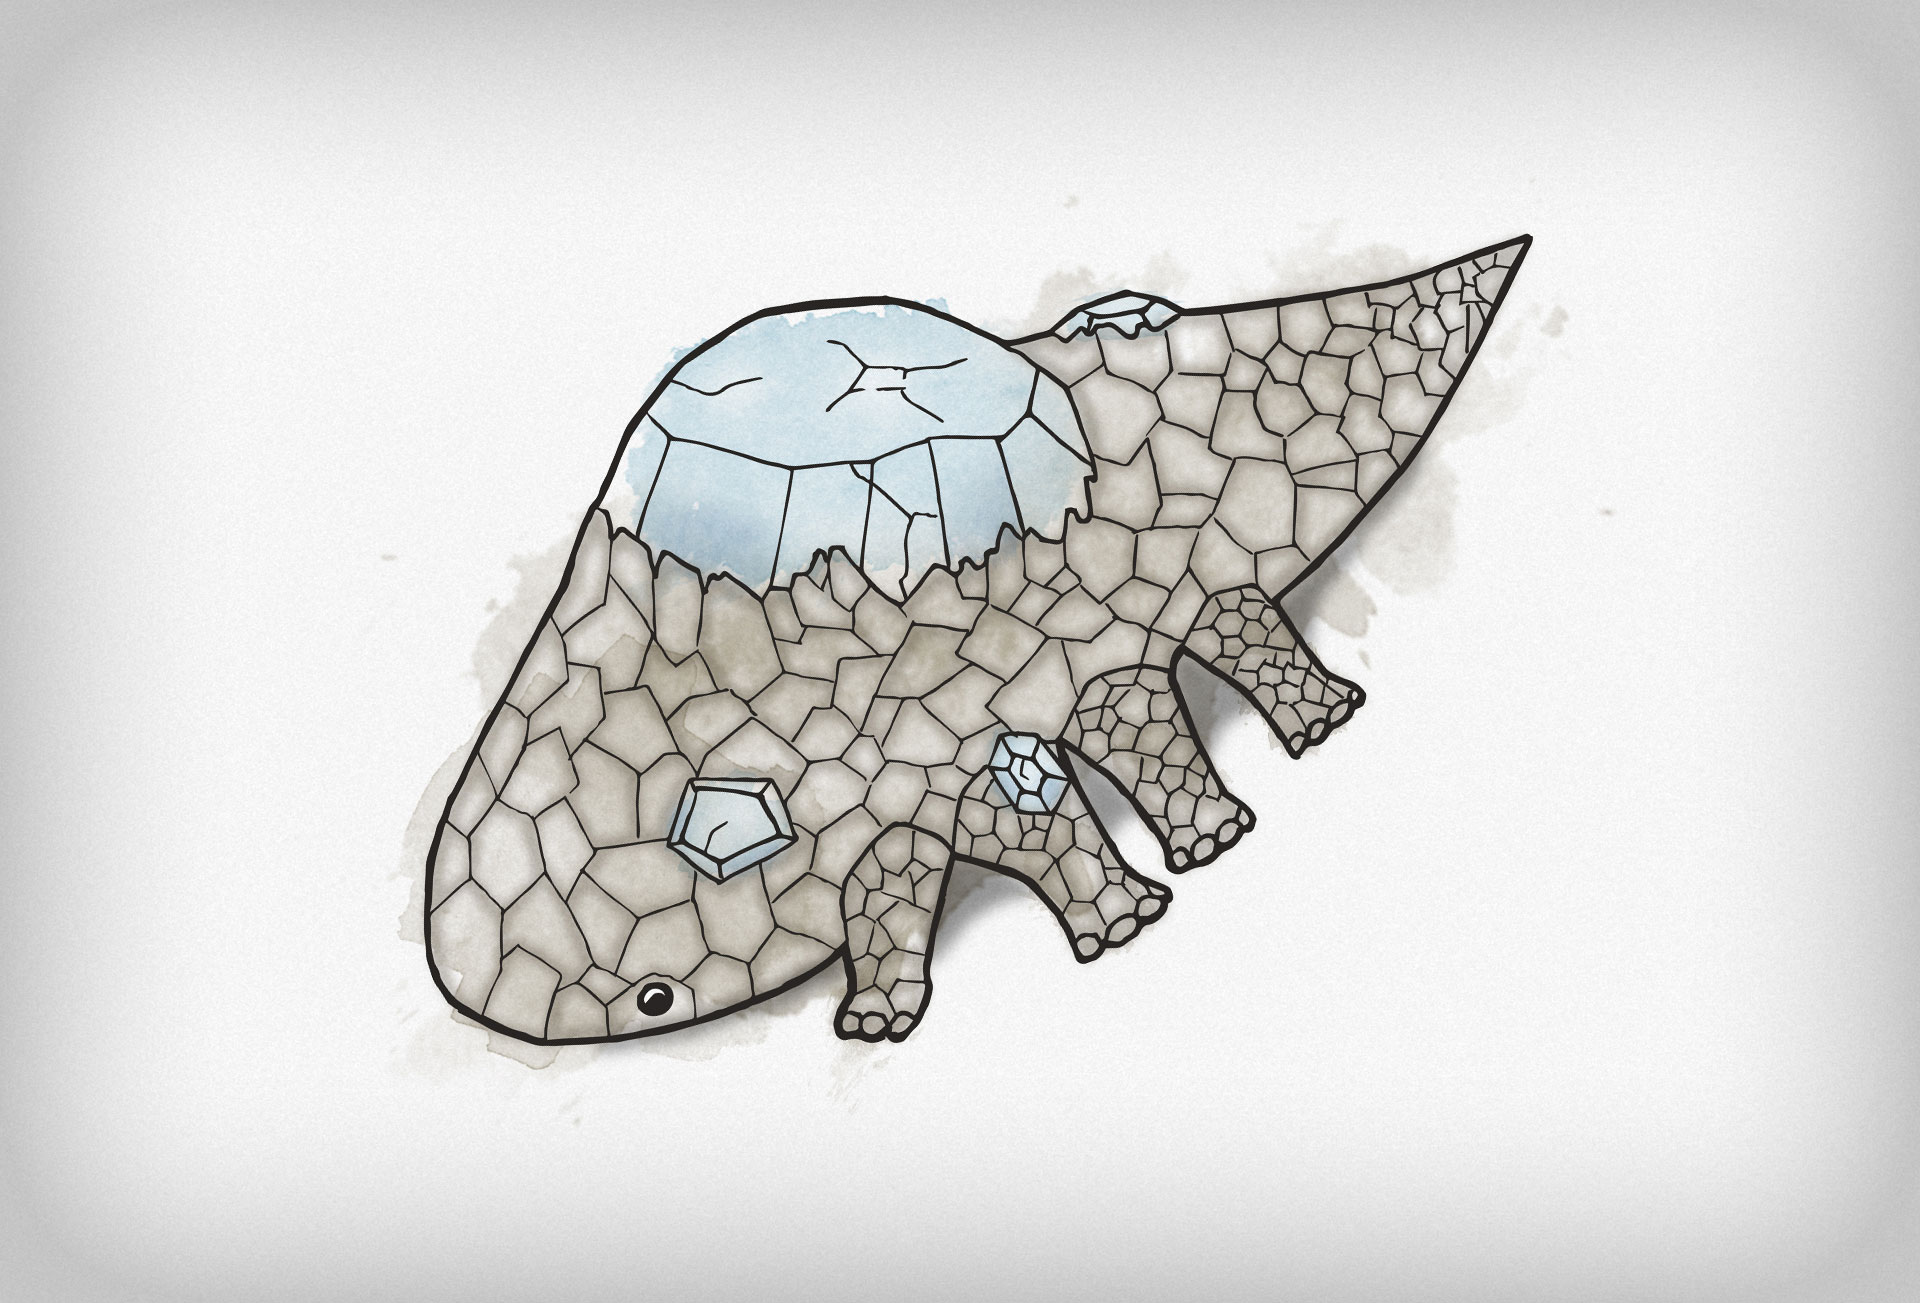 An illustration of a Crystal Lizard from Dark Souls.